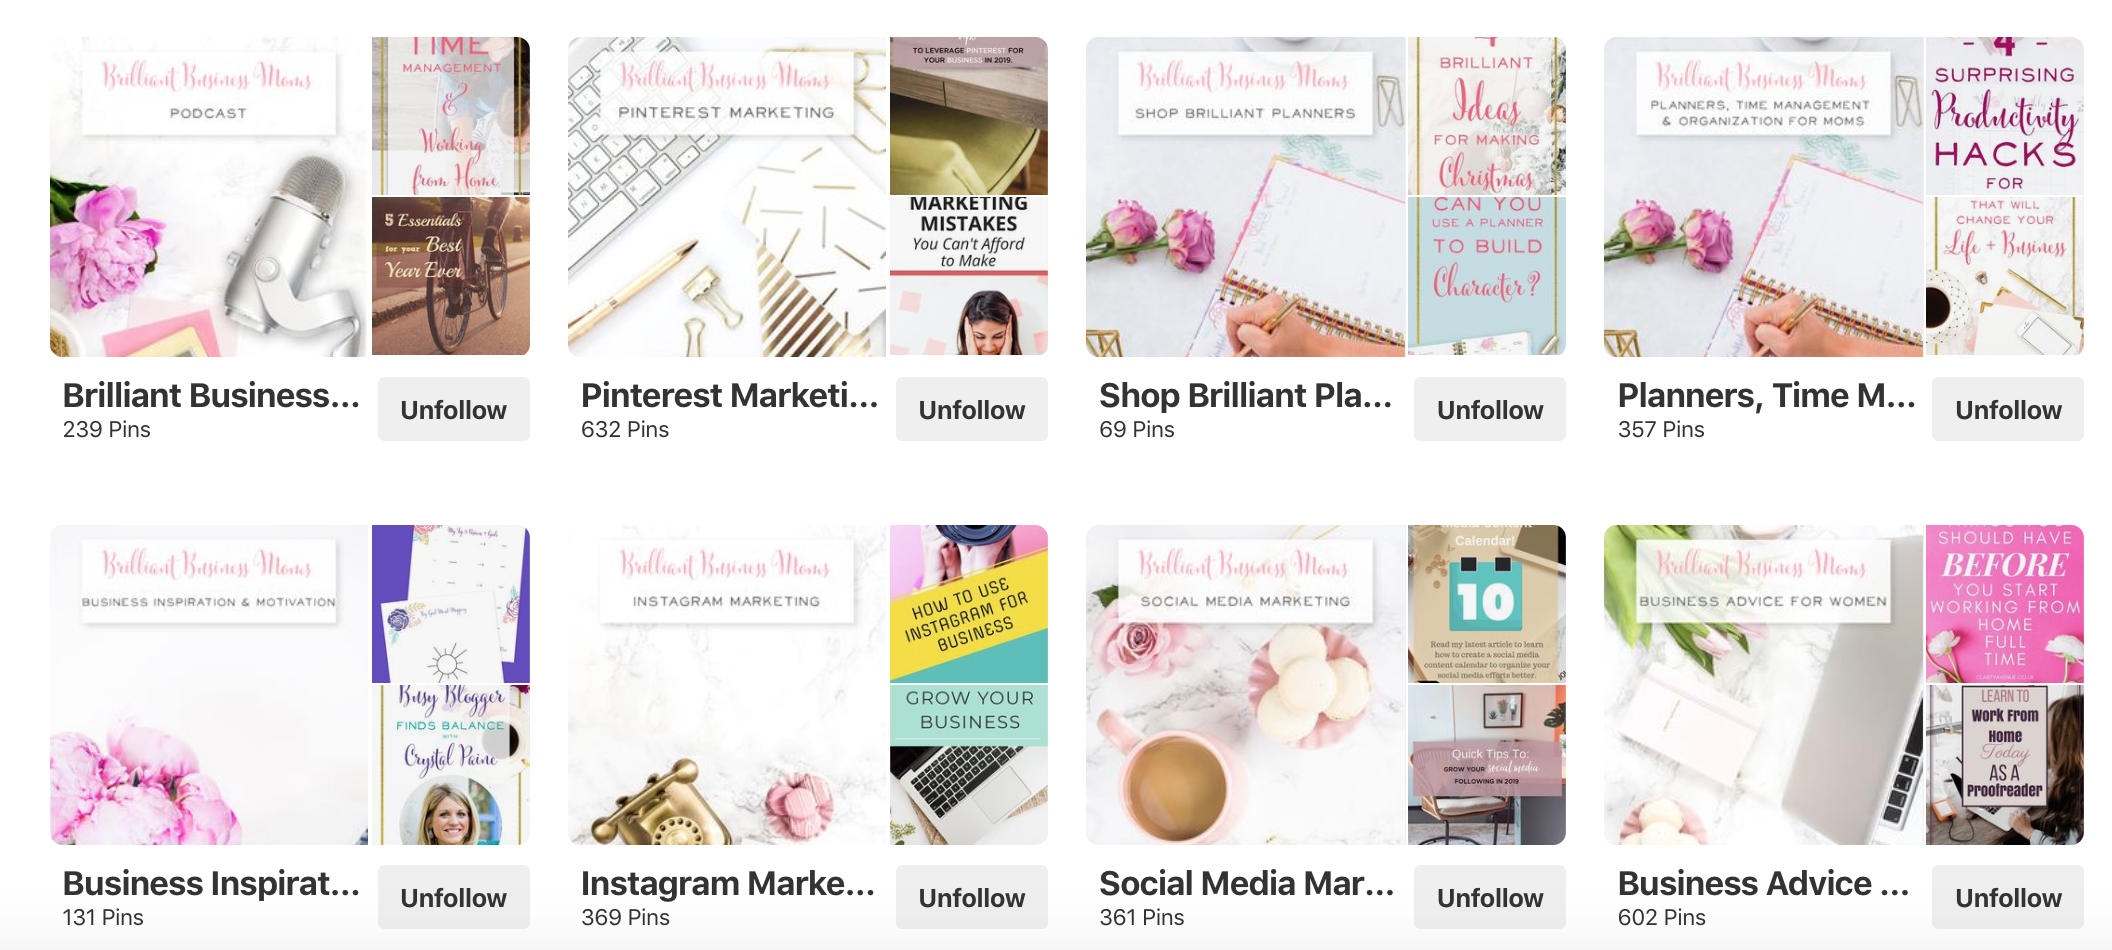 Pinterest Board Cover Ideas - Brilliant Business Moms